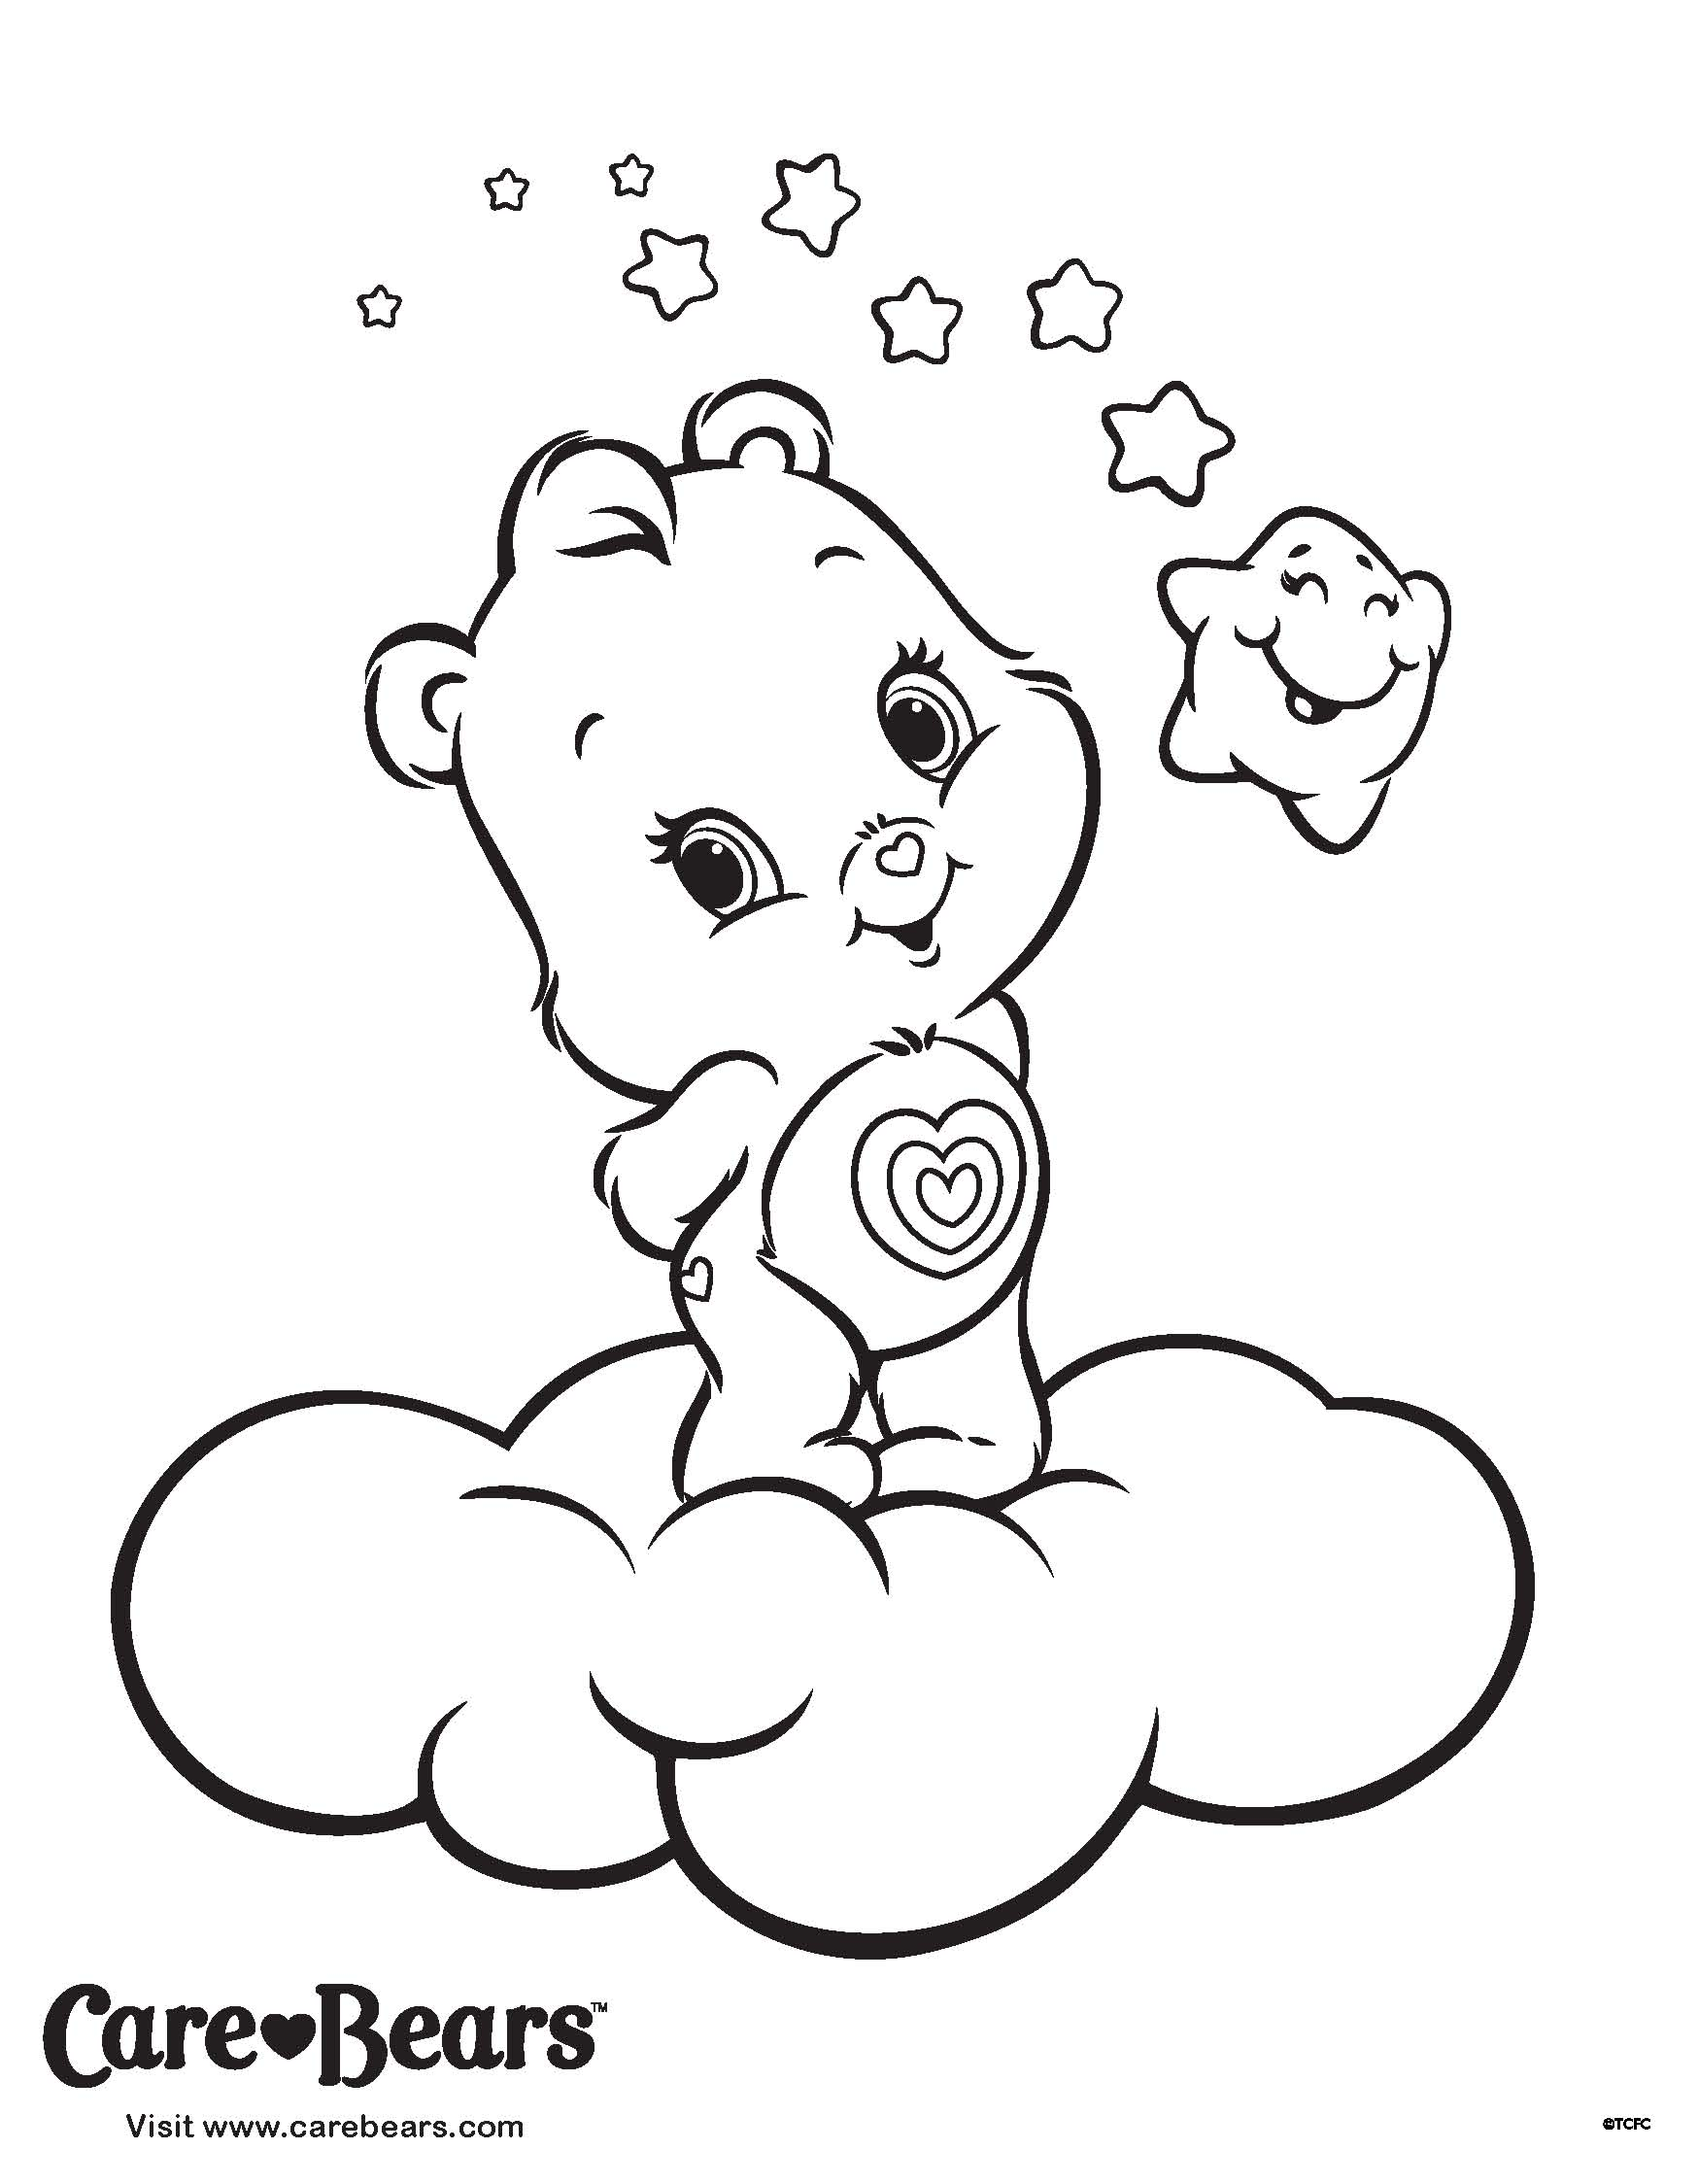 1748x2248 Picture Care Bears Coloring Pages 16 In Print With